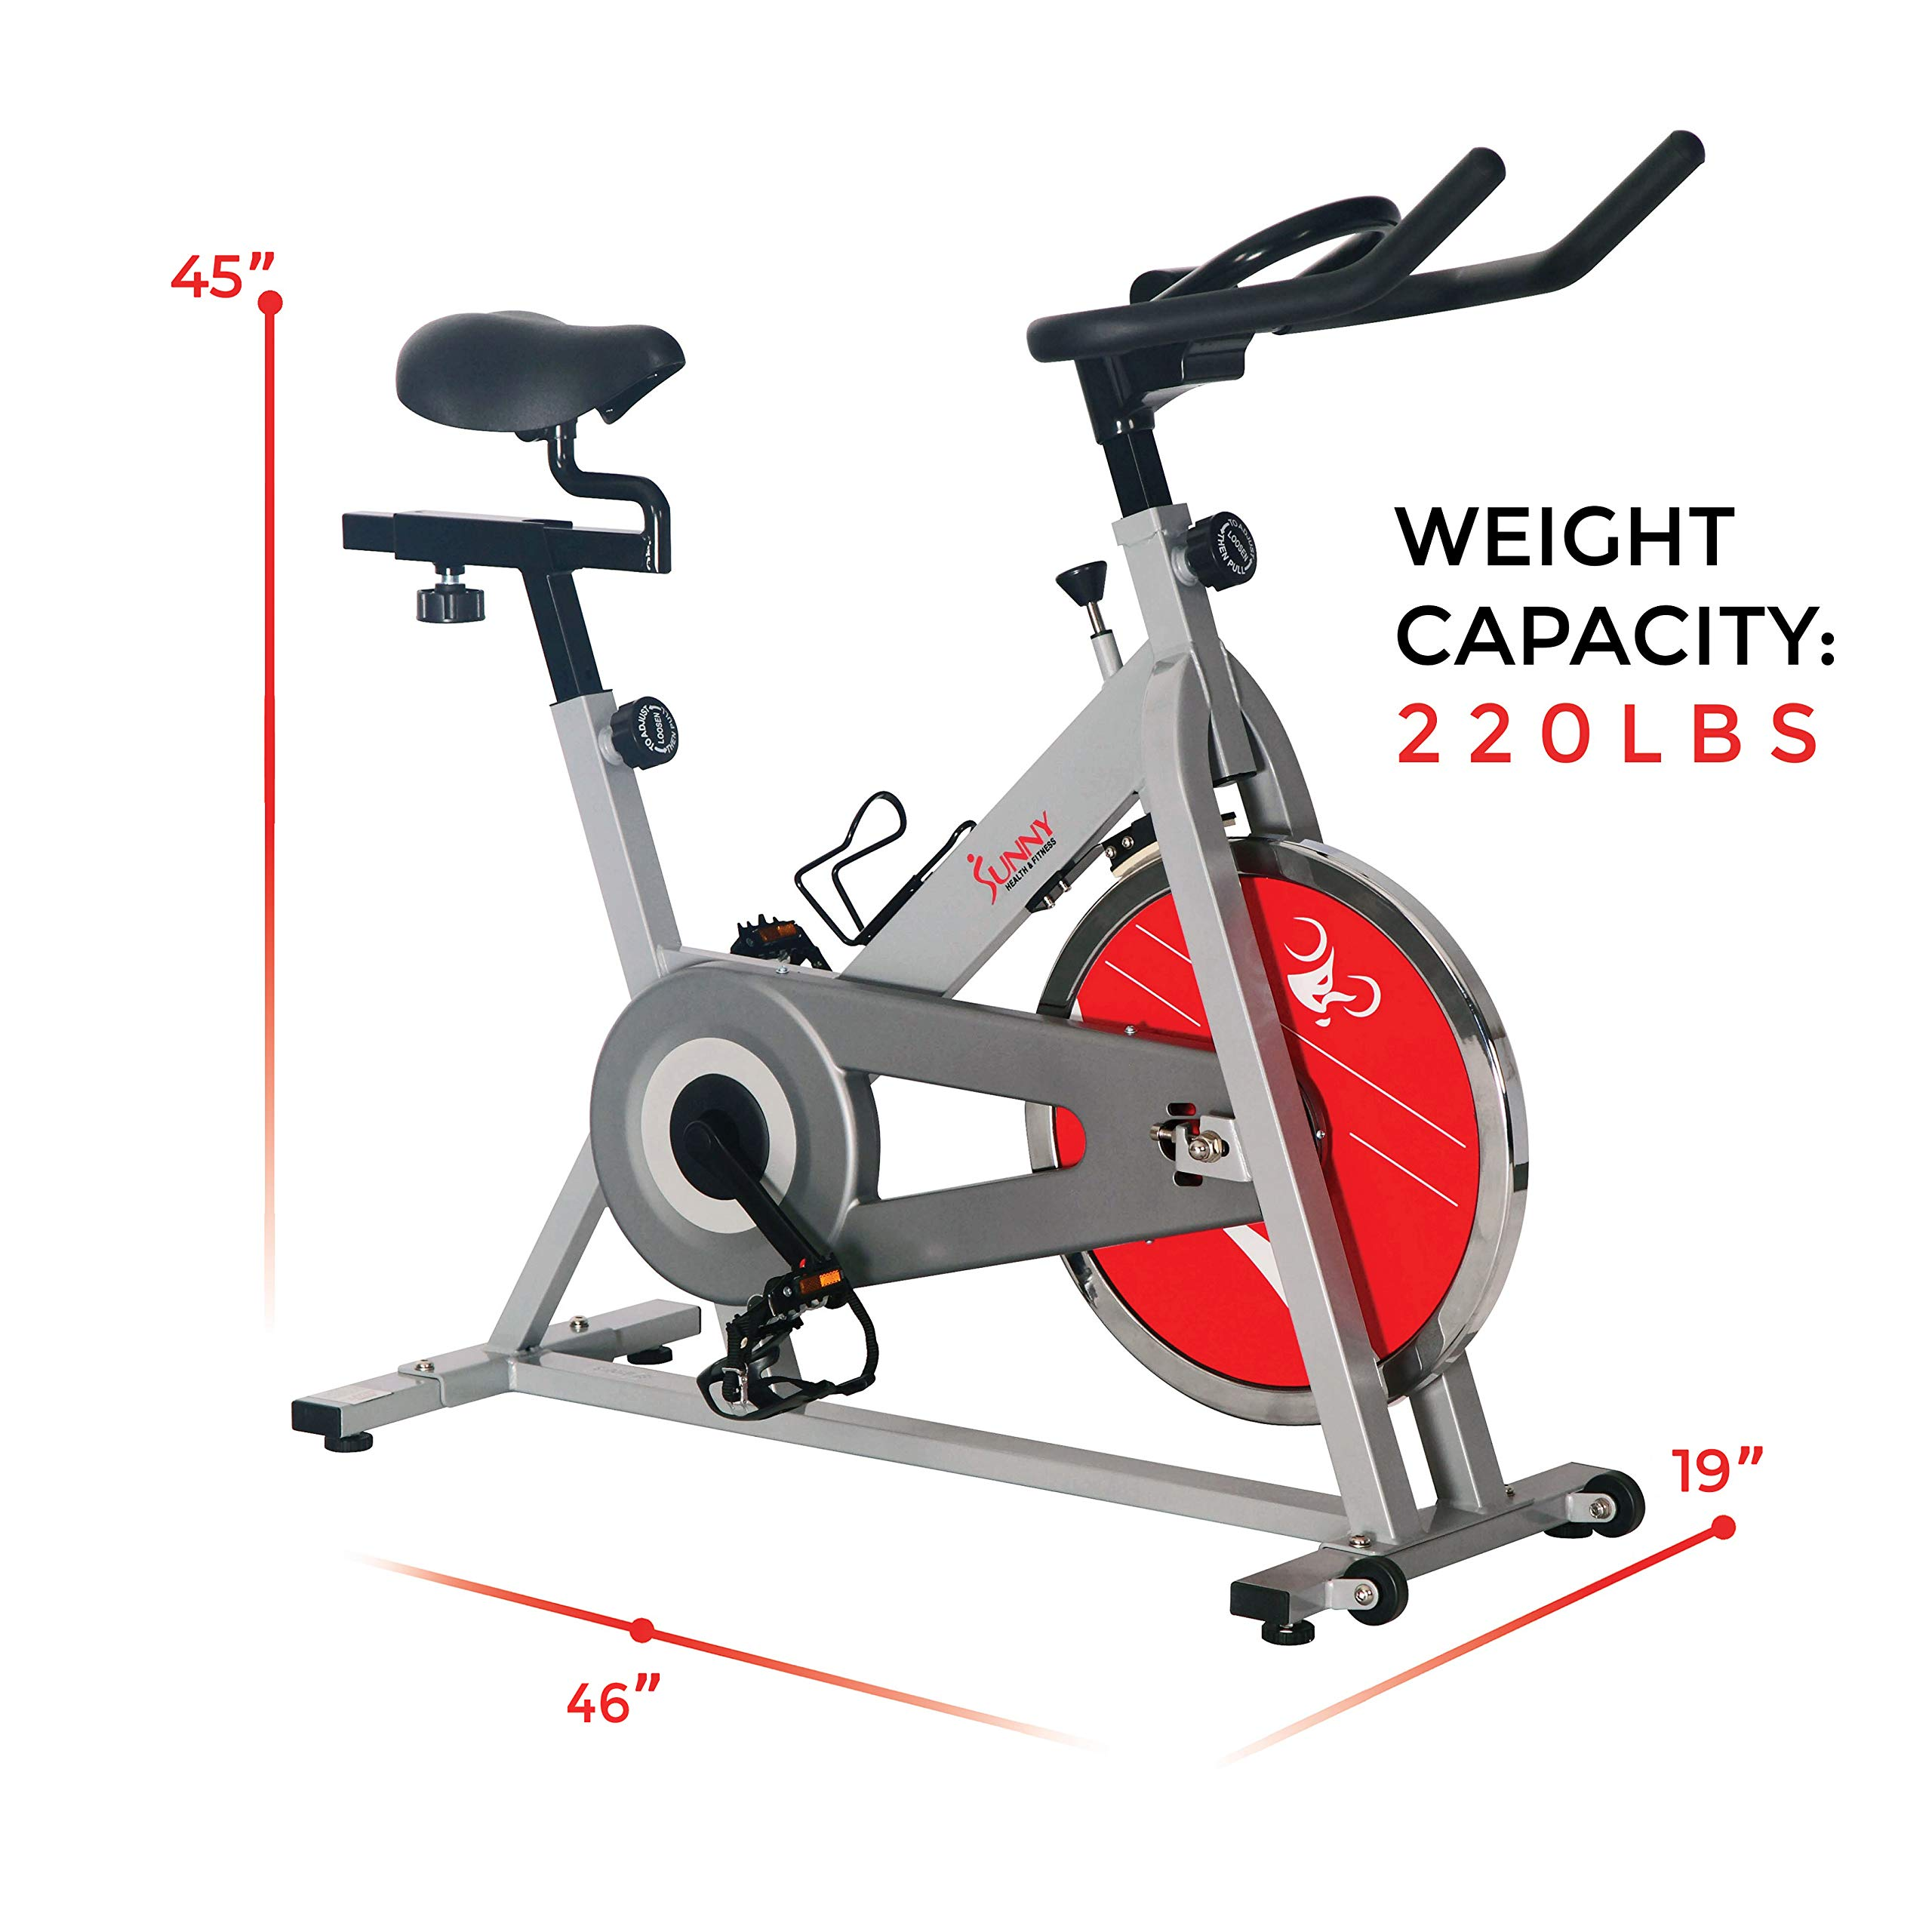 Sunny Health & Fitness SF-B1001S Indoor Cycling Bike, Silver by Sunny Health & Fitness (Image #13)